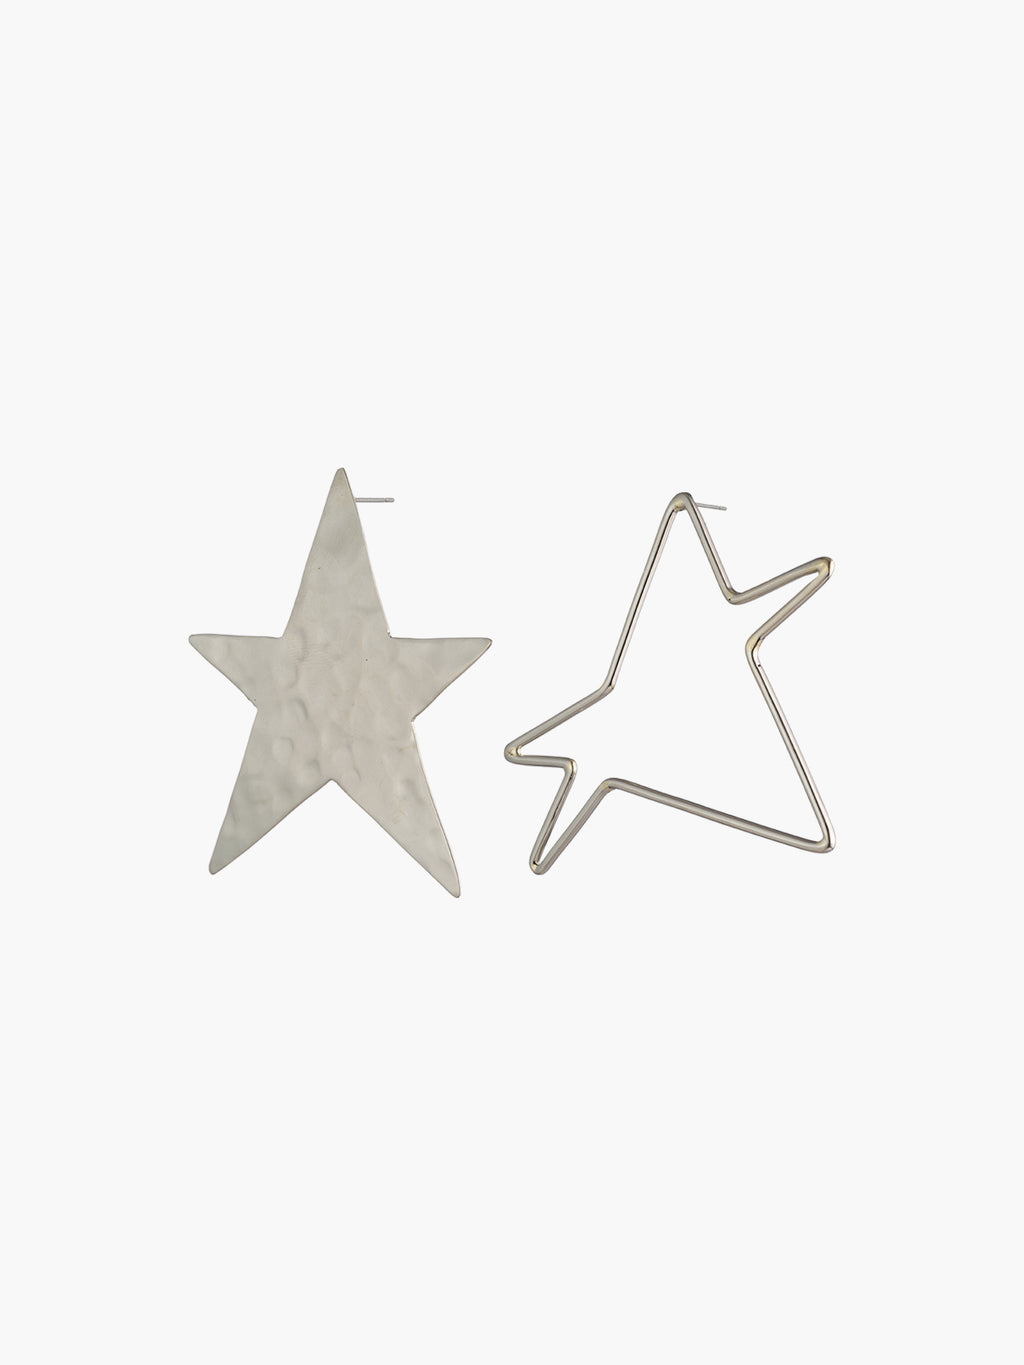 Ying Yang Star Earrings